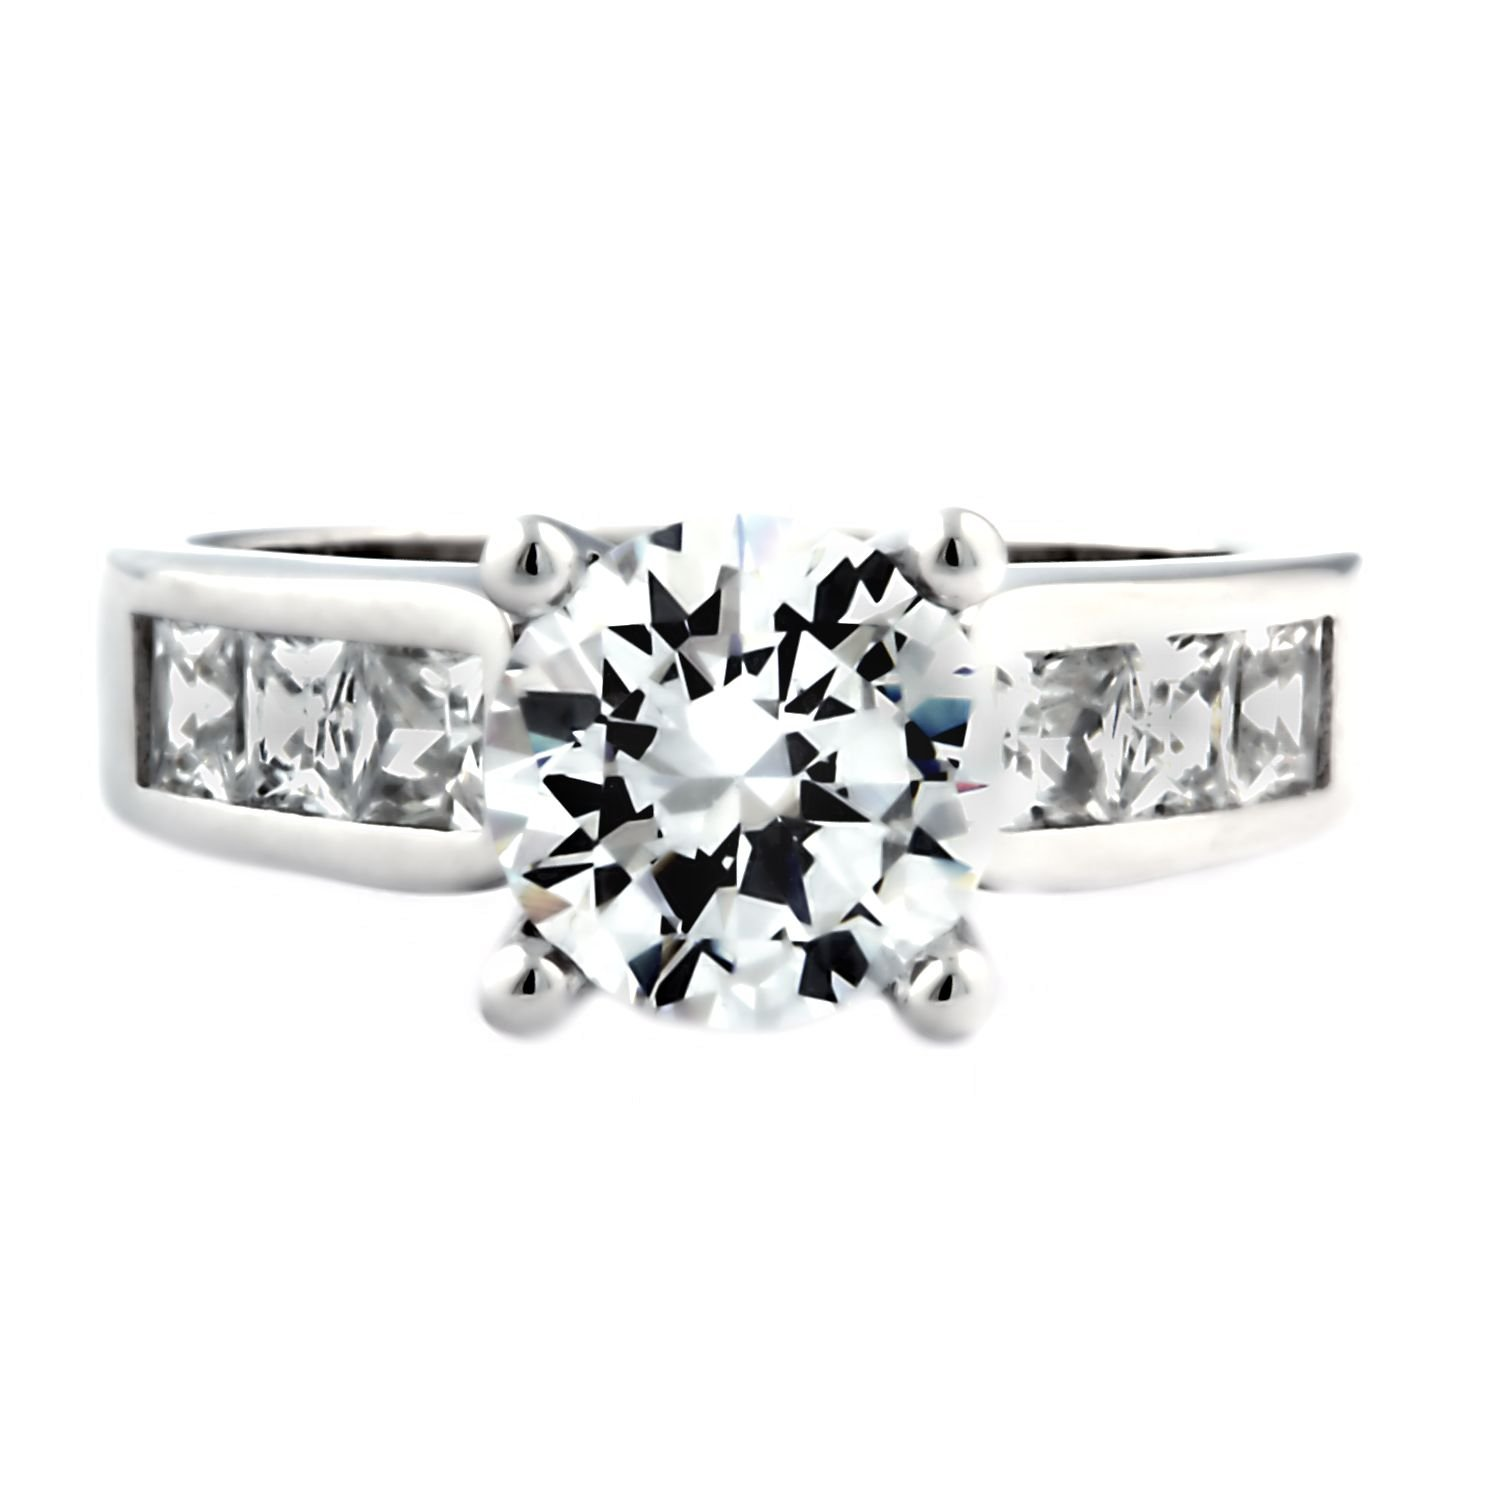 Tallia E80: 3.6ct Brilliant-cut Russian Ice on Fire CZ Engagement Ring 925 Silver, 3146